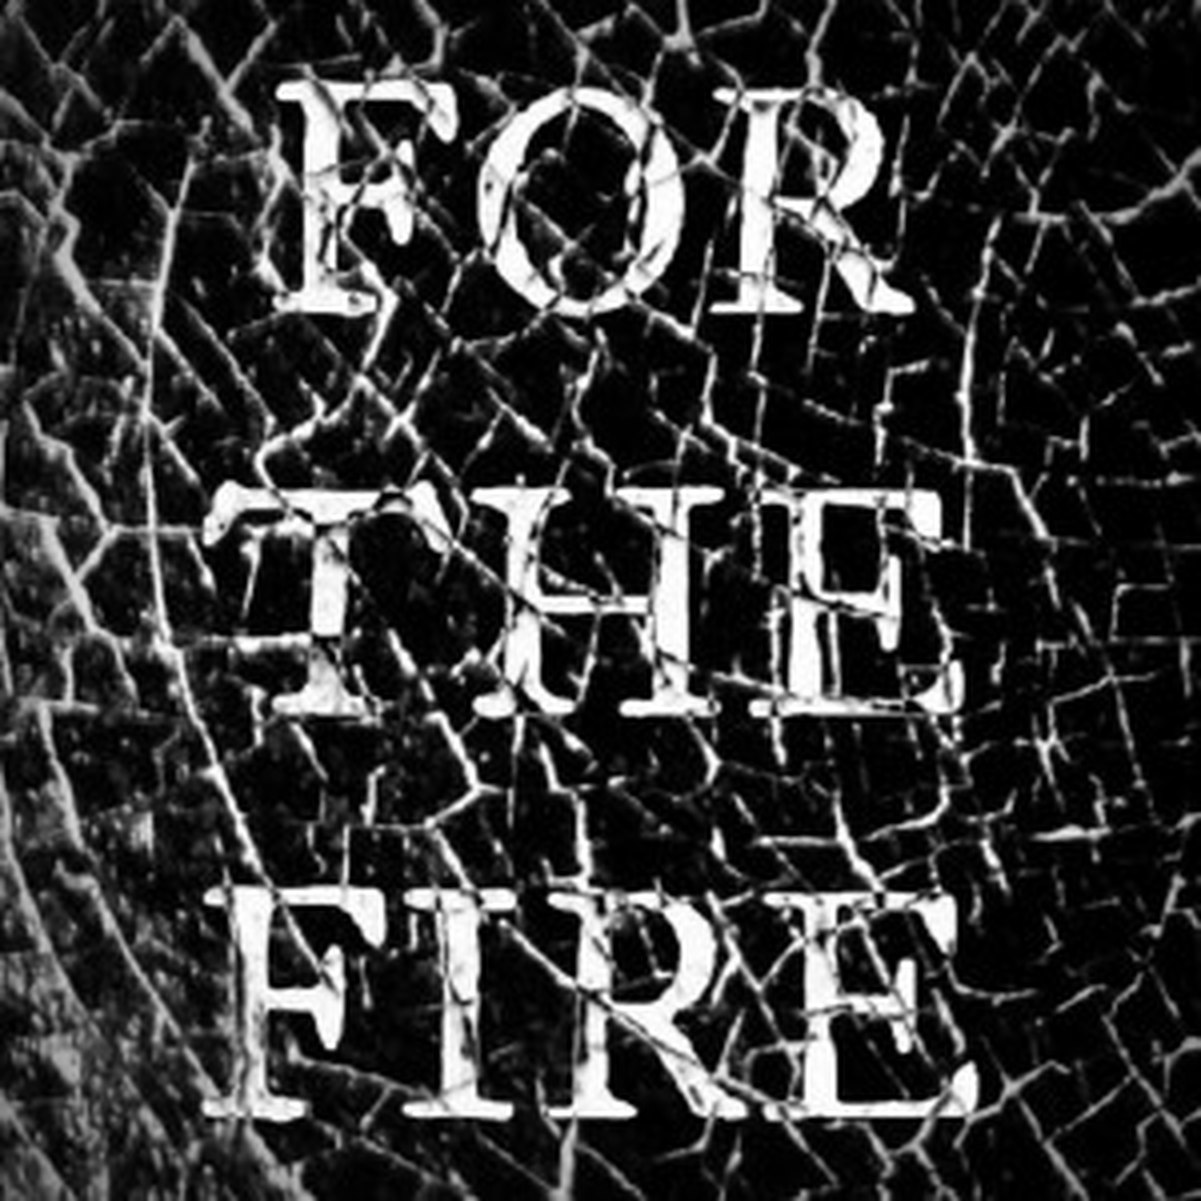 For The Fire